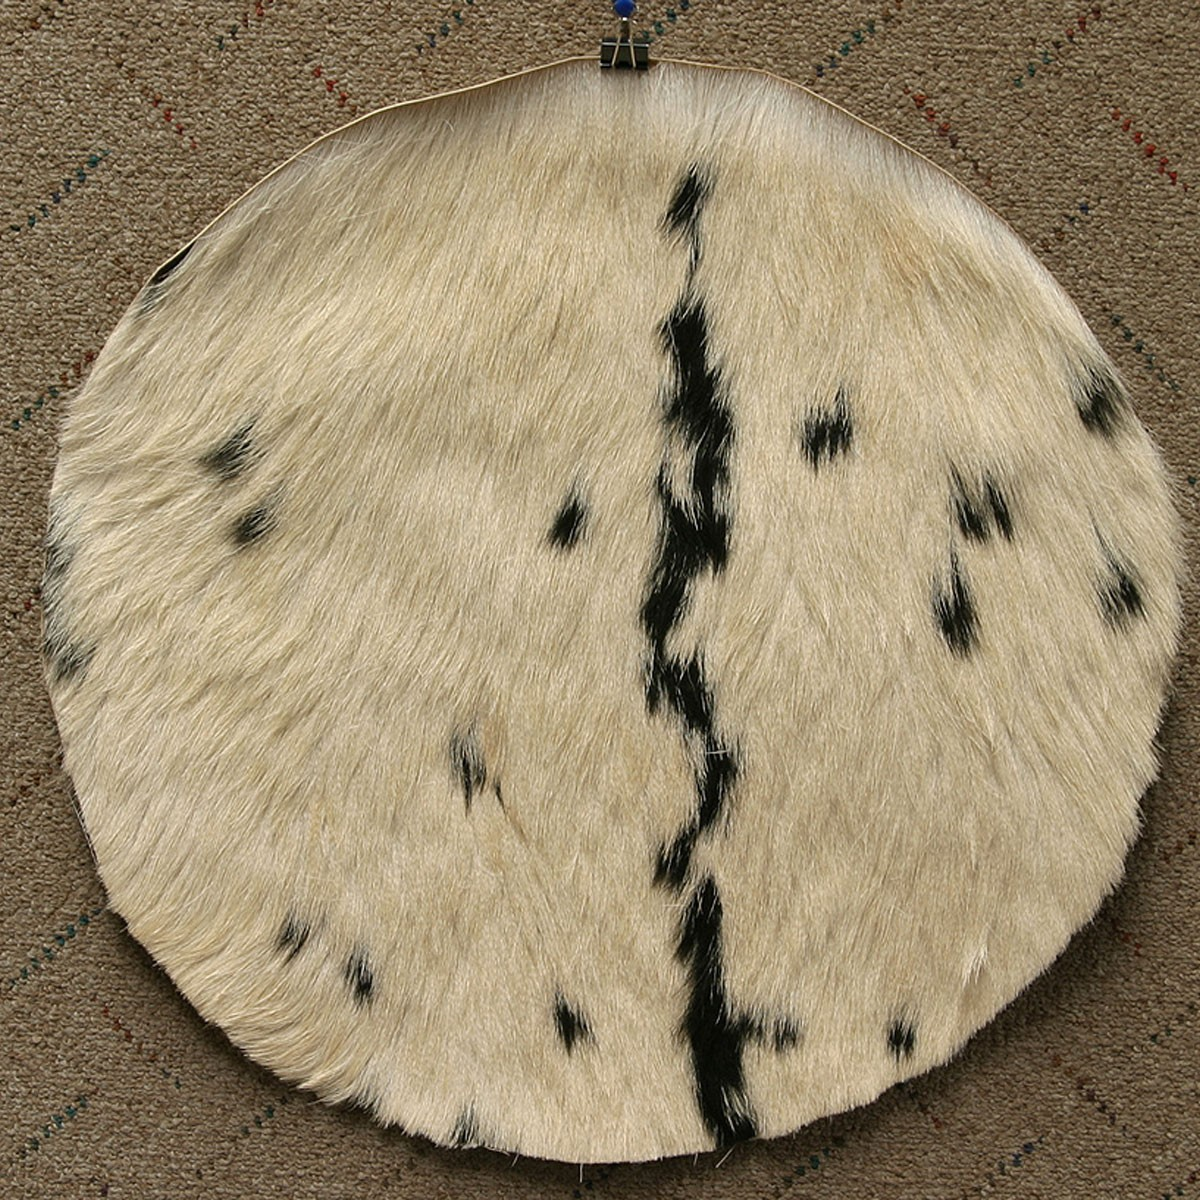 Goatskin w/ Hair 18' - Thin